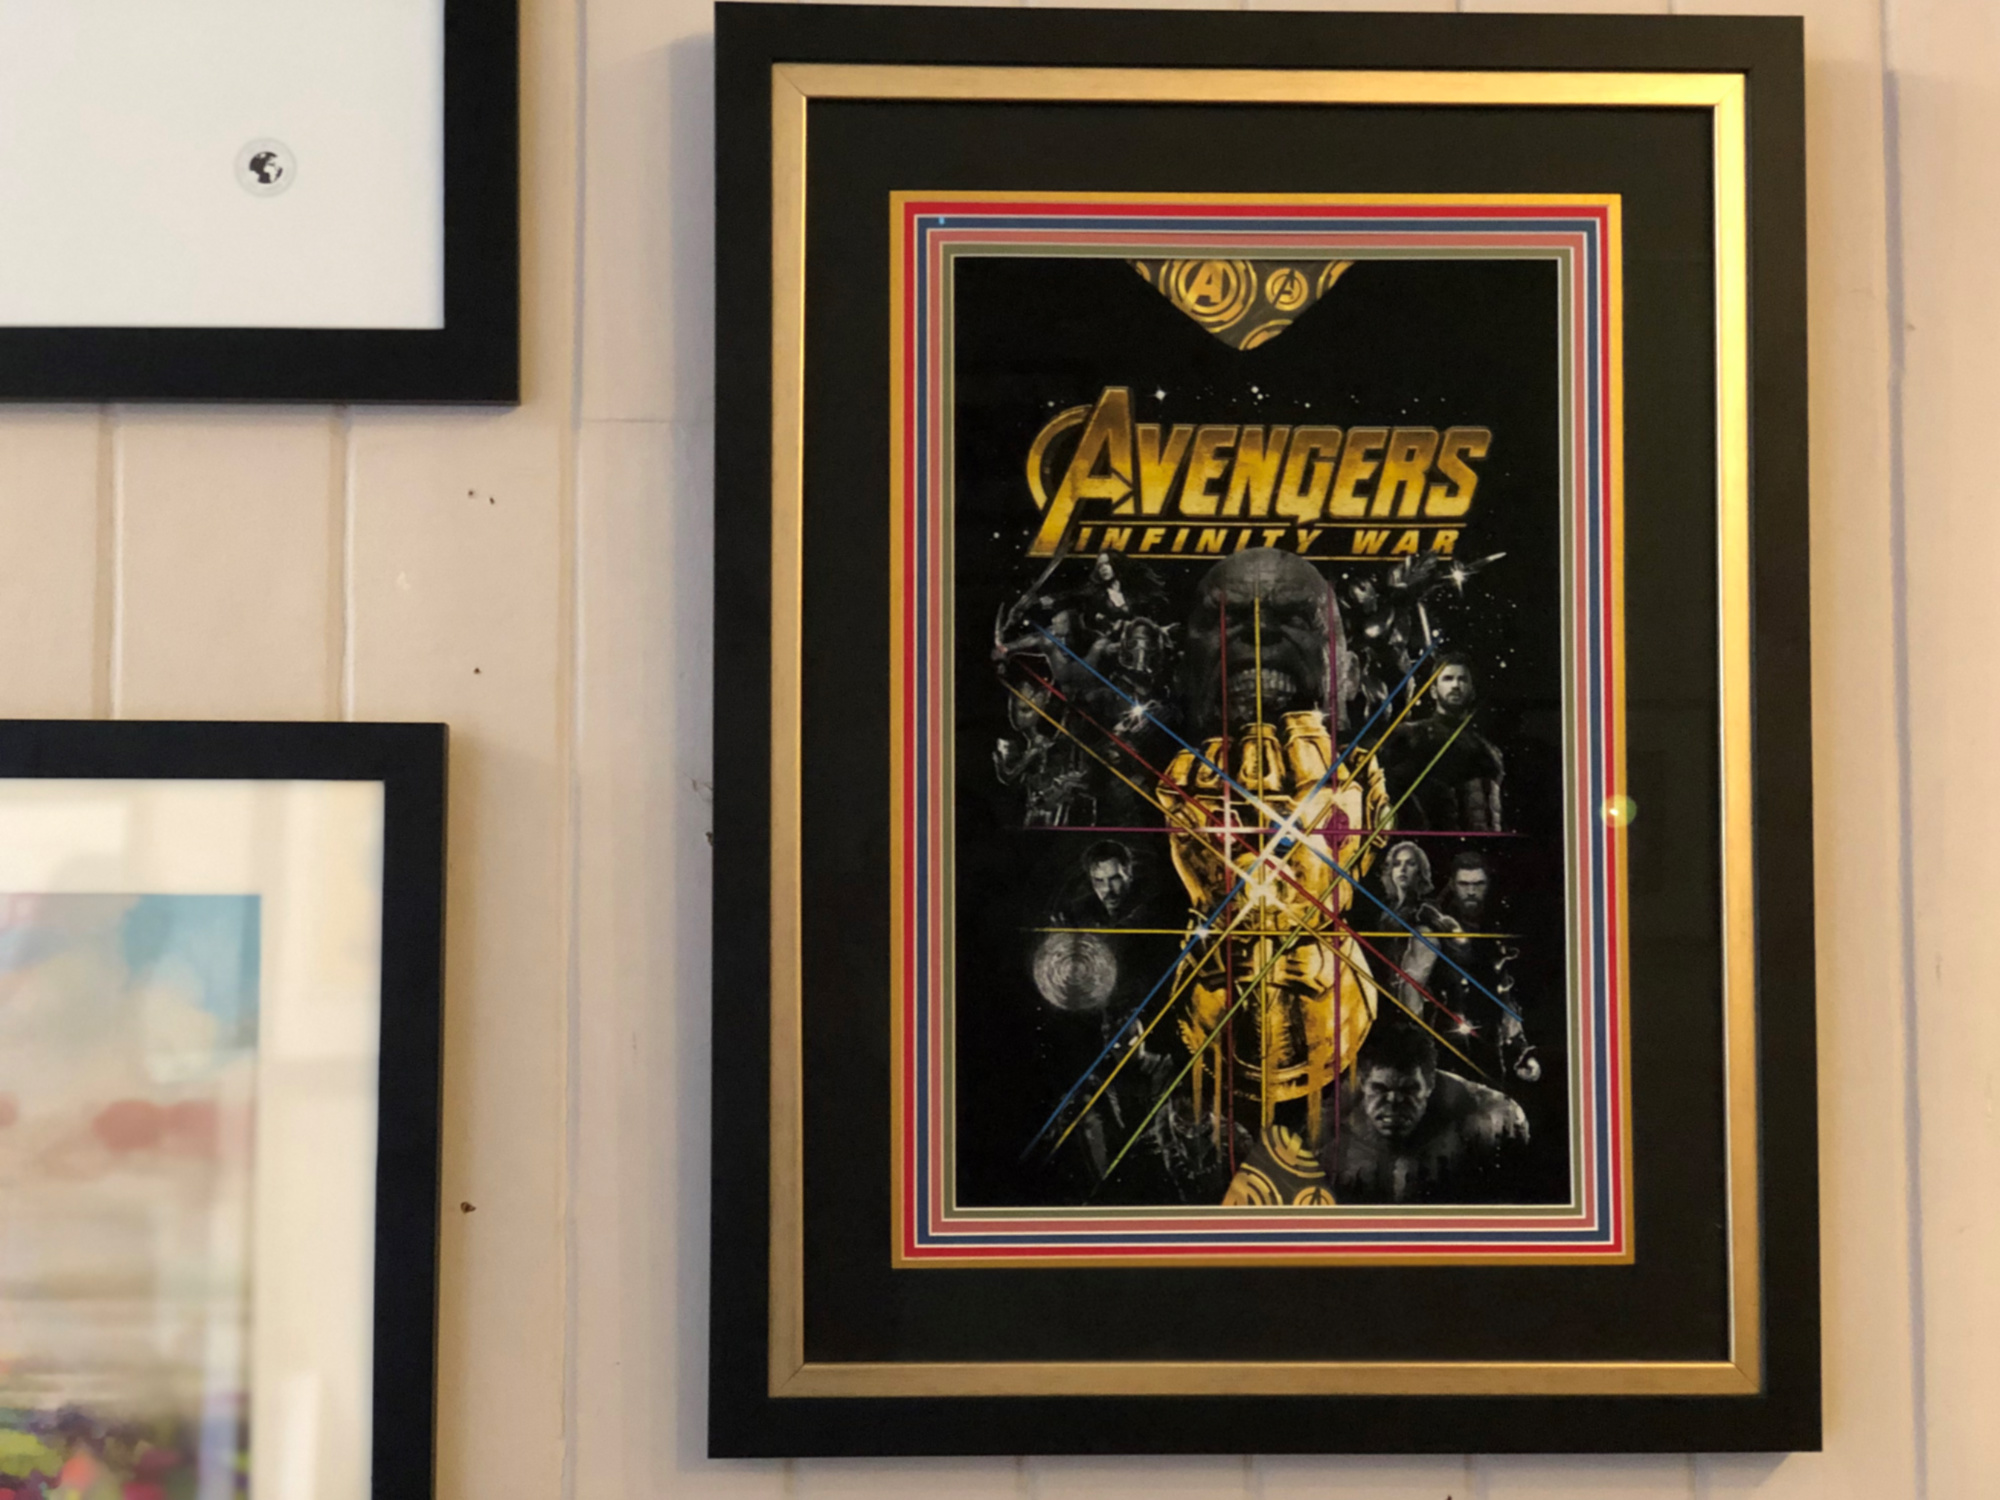 This Avengers poster is one of my all-time favourite examples of professional framing. It blew my mind when I saw this incredible piece - a work of art in itself. The team at Mimi V's used 6 mounts - yes 6!! - each a different colour and each with a beveled white edge, adding depth to the picture. It was then double-framed to add another dimension. I love the way the gold stands out and links to the gold in the poster. What a stunning piece!